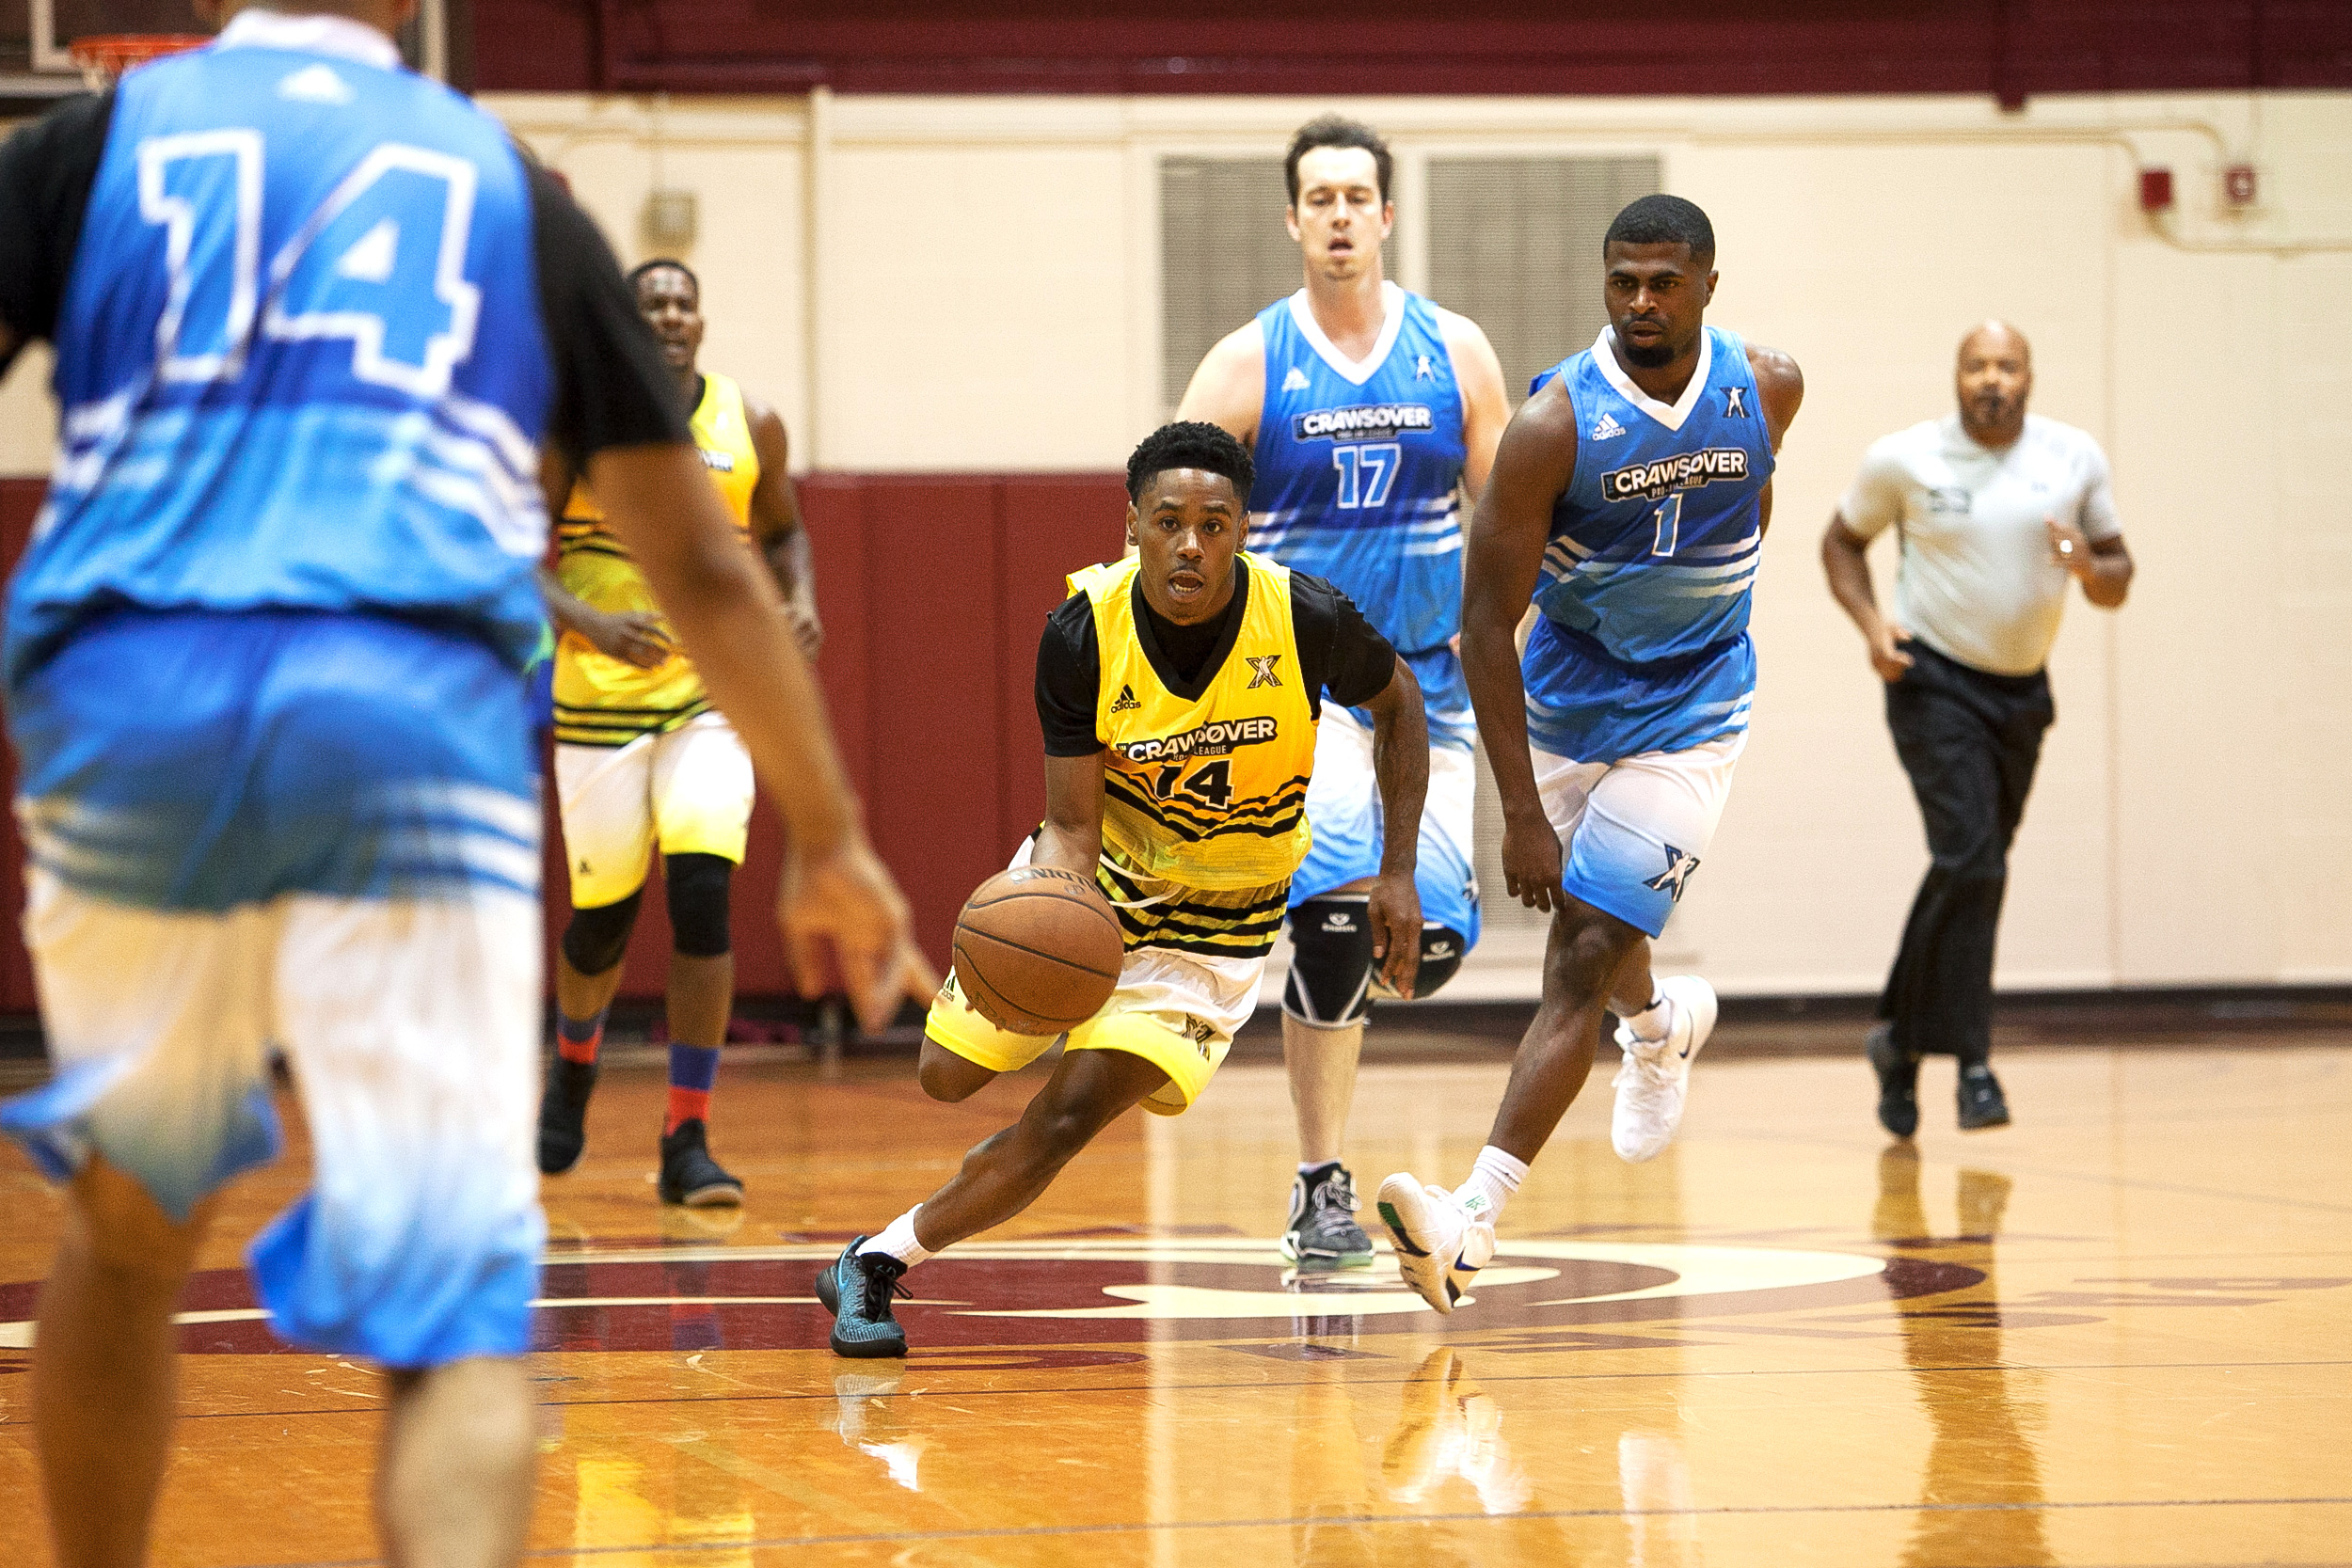 1451acb2 SB Battle's DJuan Miller (center) runs the ball against The Unit during  their Crawsover league pro-am basketball game at Royal Brougham Pavilion at  Seattle ...